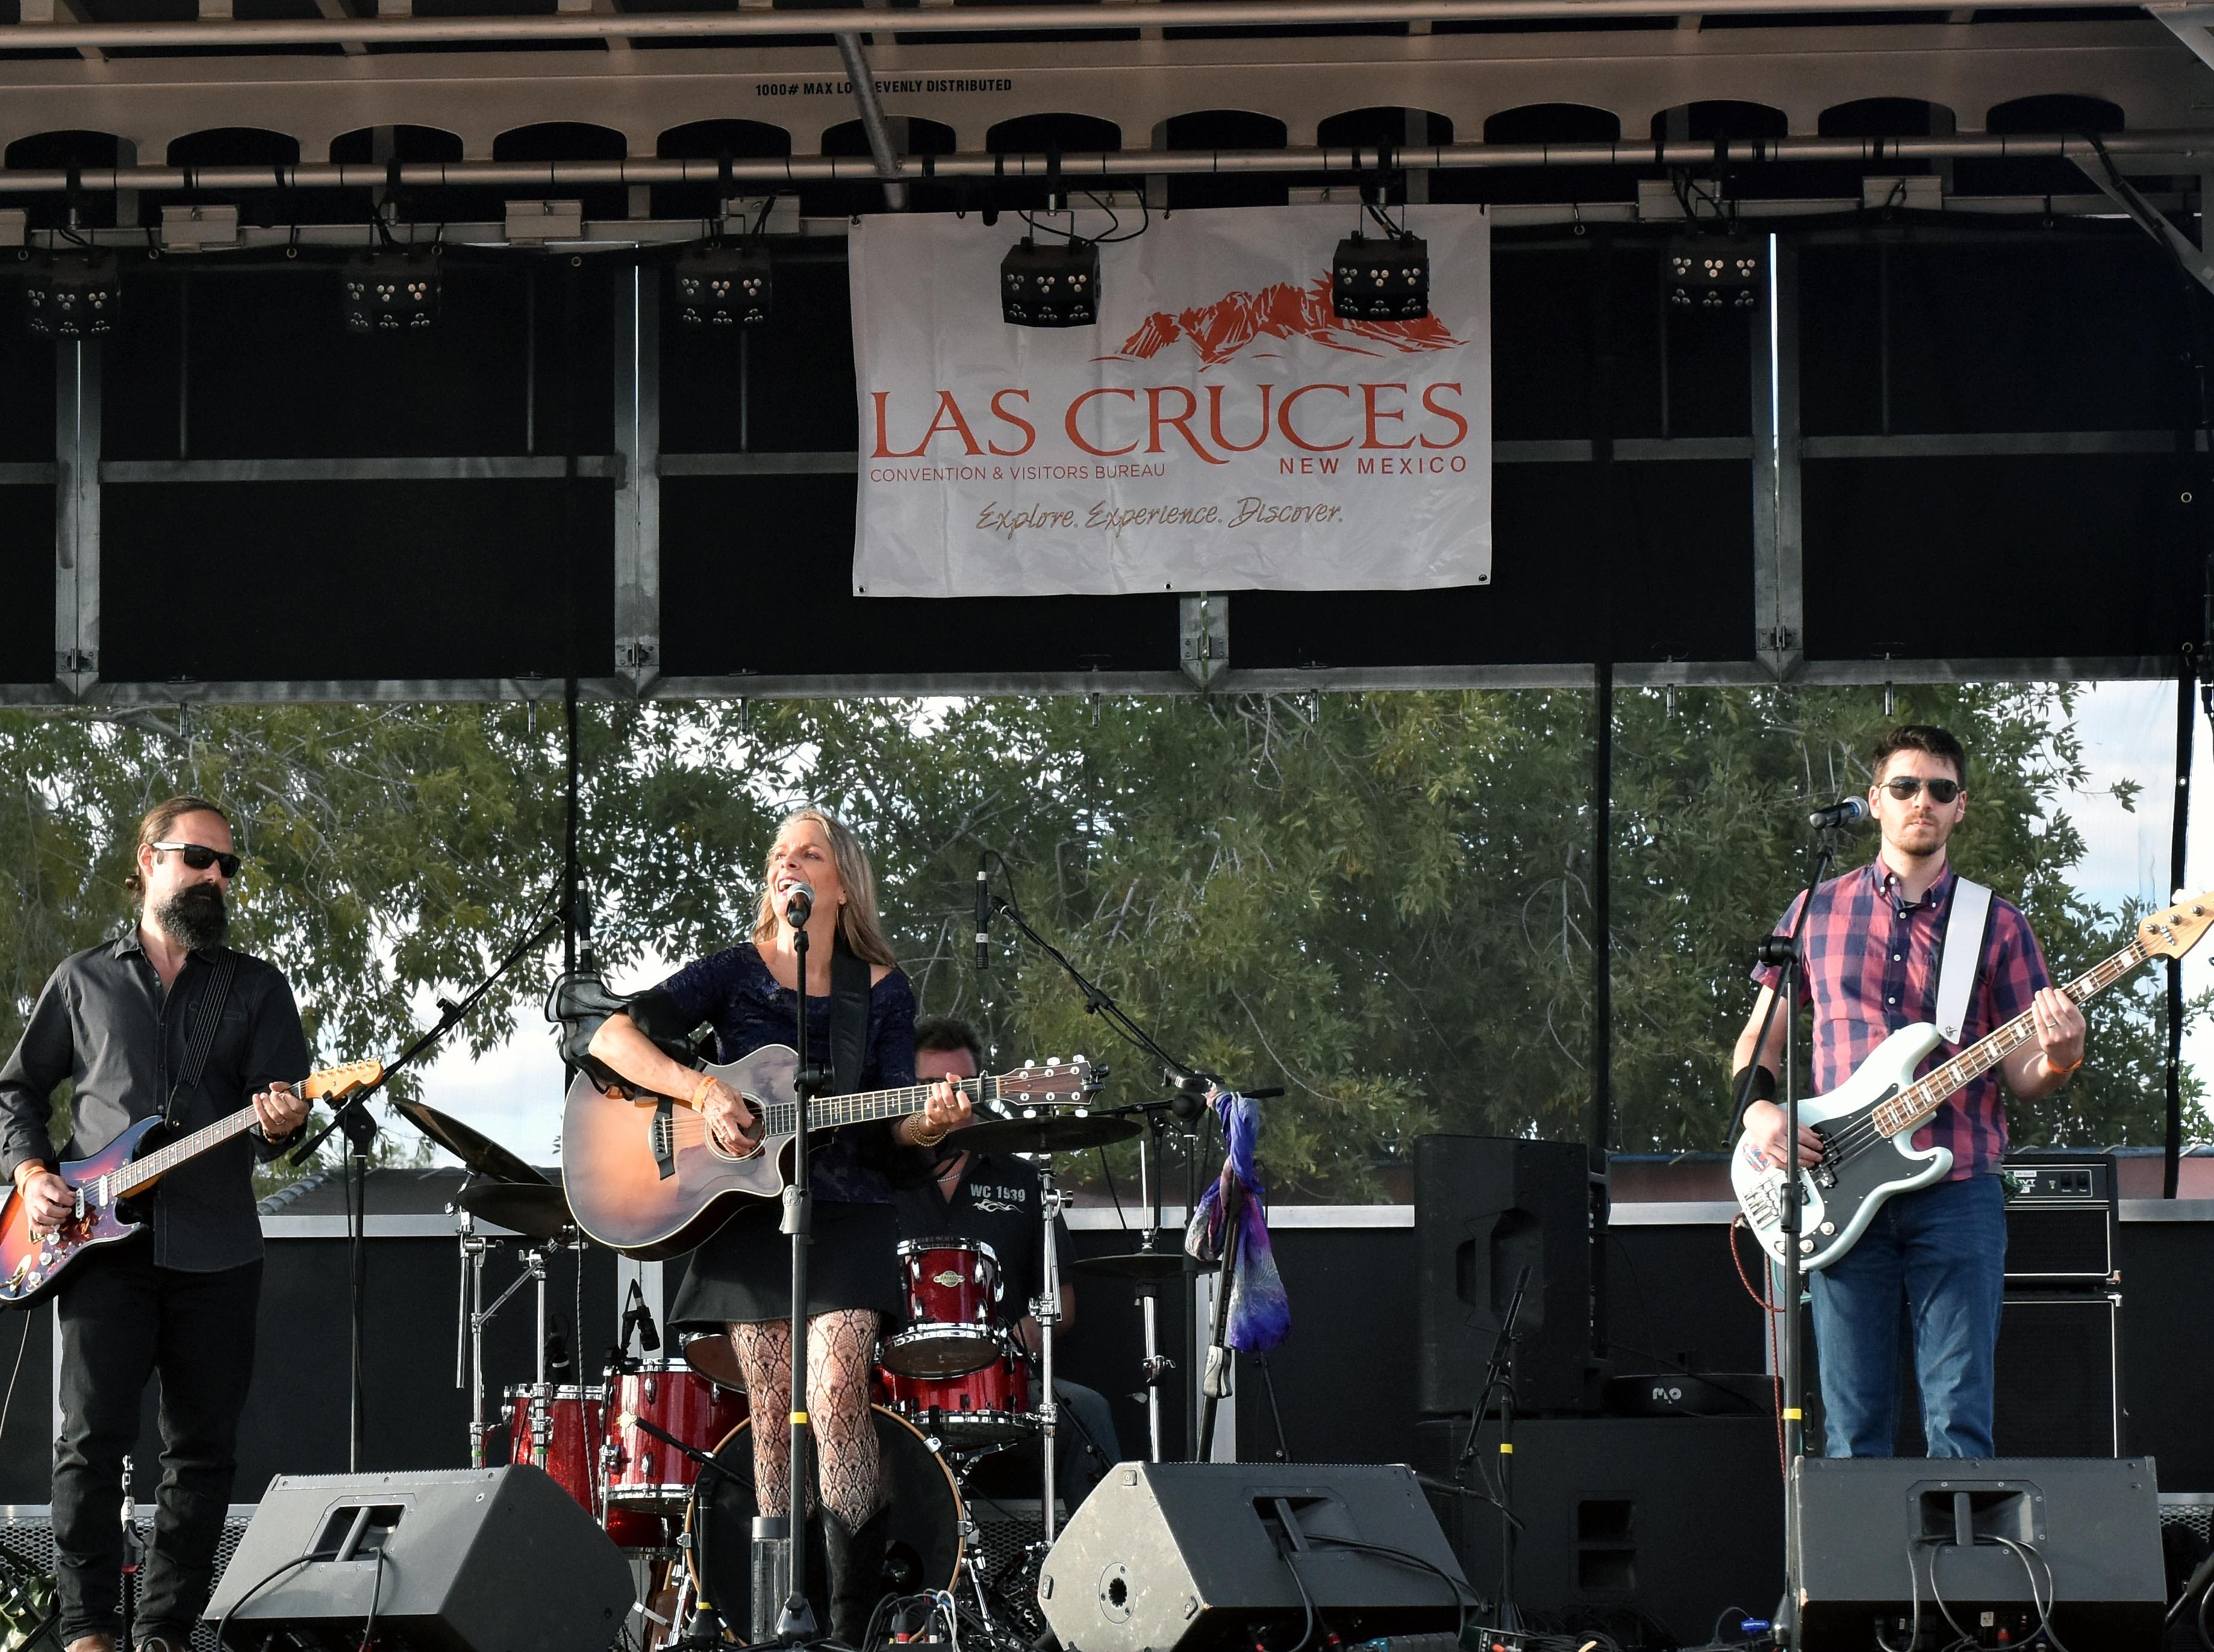 Half-Broke Horses opens the Las Cruces Country Music Festival on Saturday, Oct. 20, 2018.